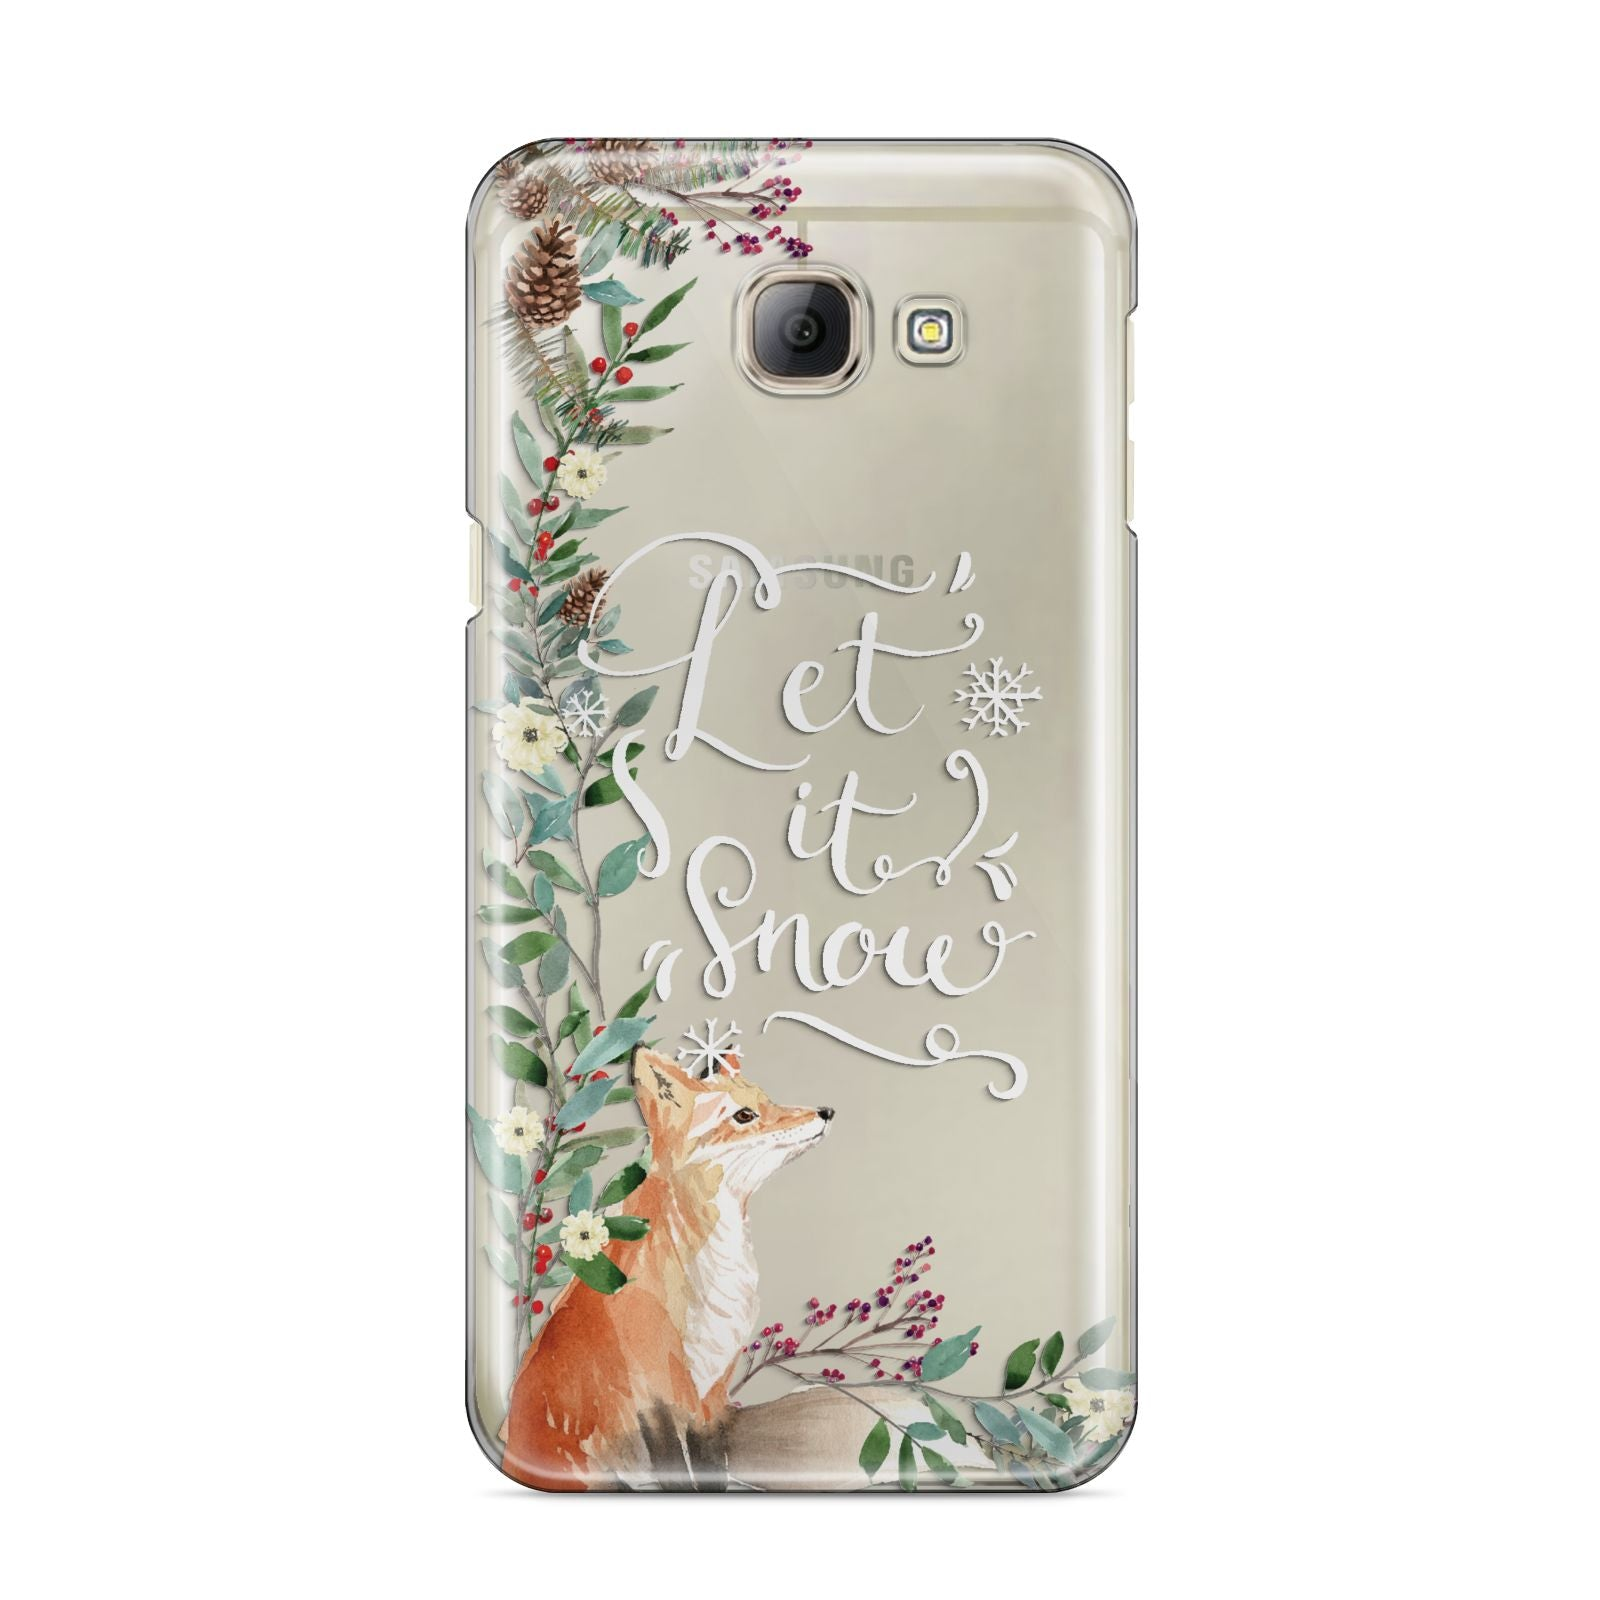 Let It Snow Christmas Samsung Galaxy A8 2016 Case